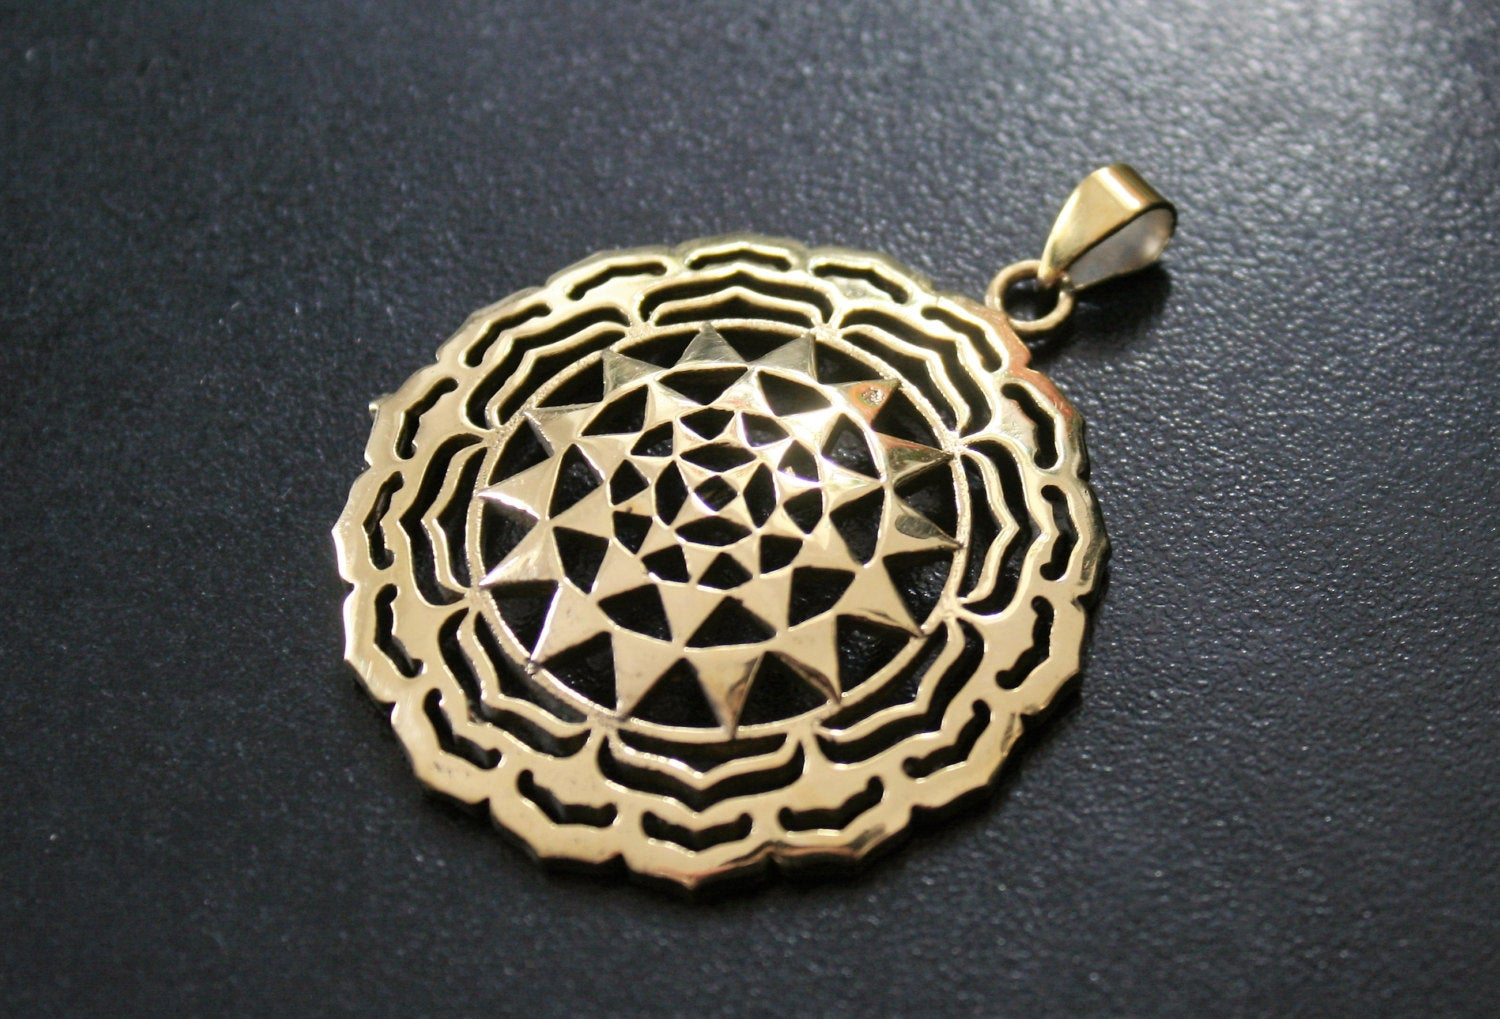 SRI YANTRA Brass Pendant - Sri Yantra Necklace, Mandala Necklace, Hippie Necklace, Psy, Tribal Necklace, Gypsy, Sacred Geometry Necklace